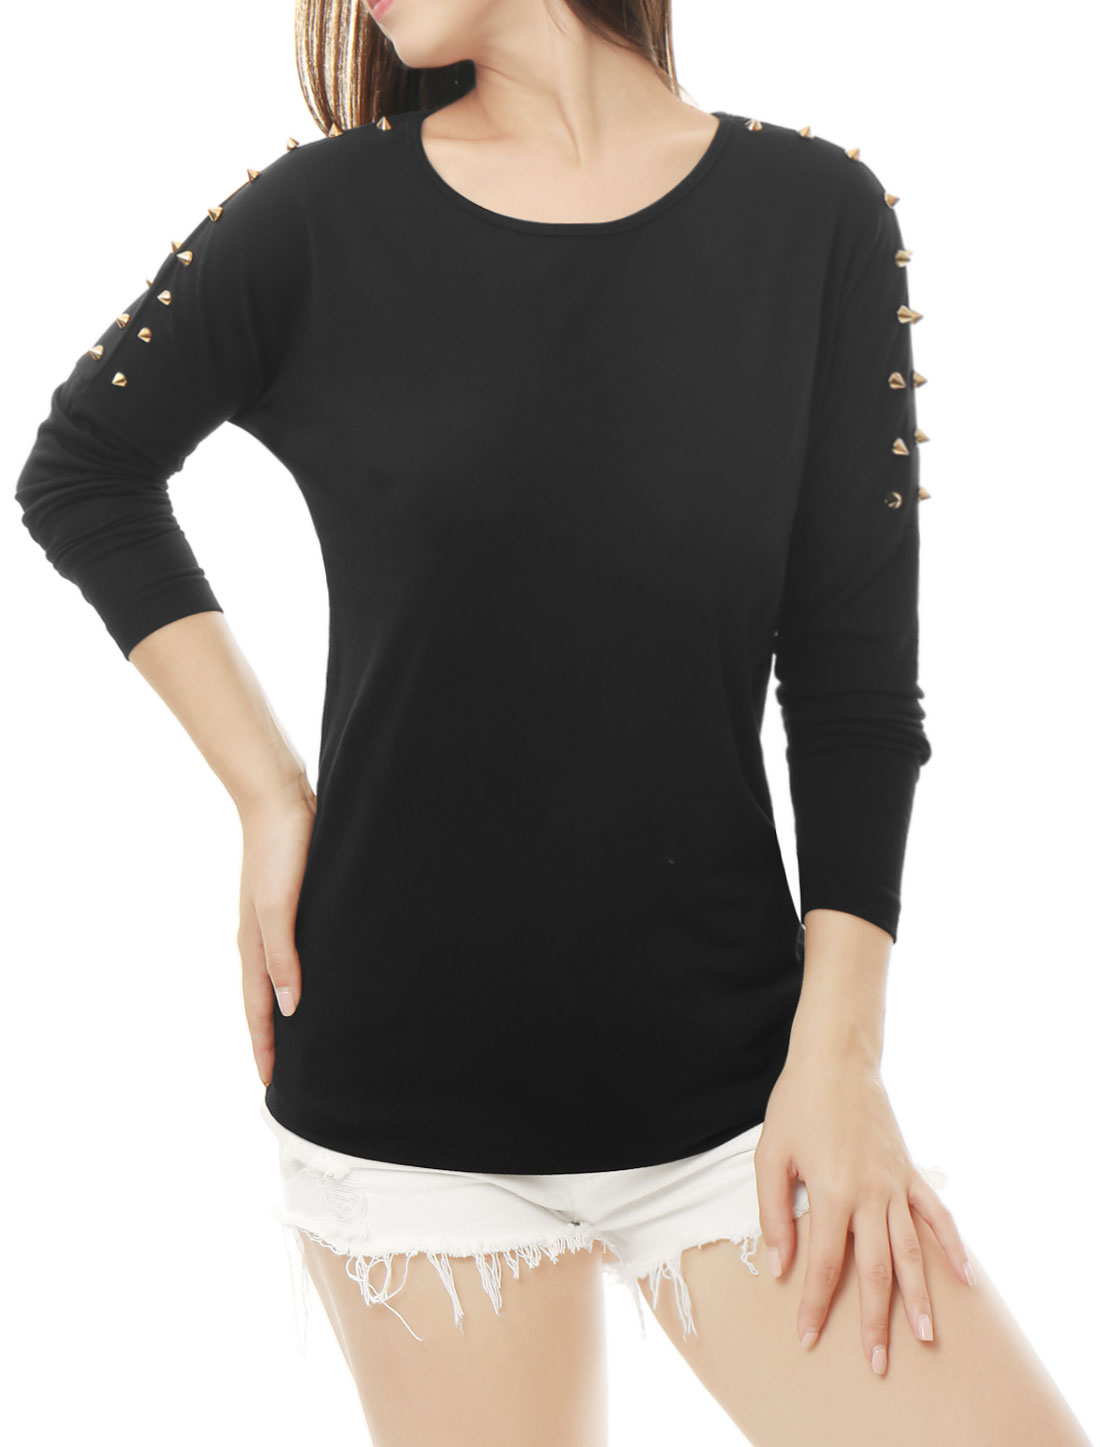 Women Round Neck Studs Embellished Dolman Sleeves Top Black S